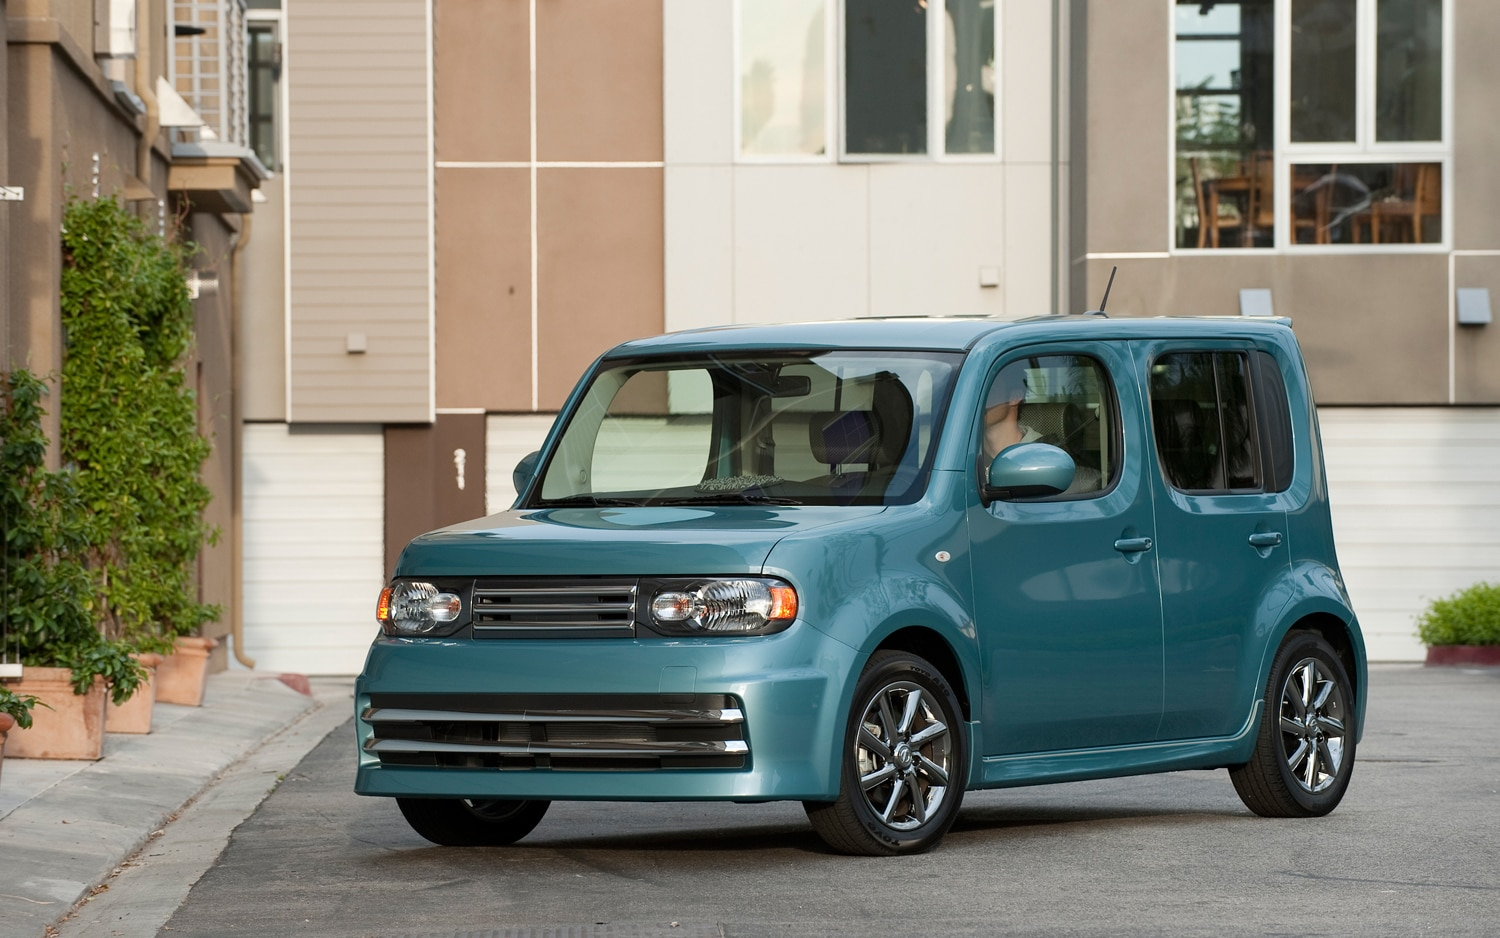 Nissan Cube Electric Vehicle Fuel Efficient Cars Hybrids And Ev Engine Diagram 2012 Front Three Quarter 1